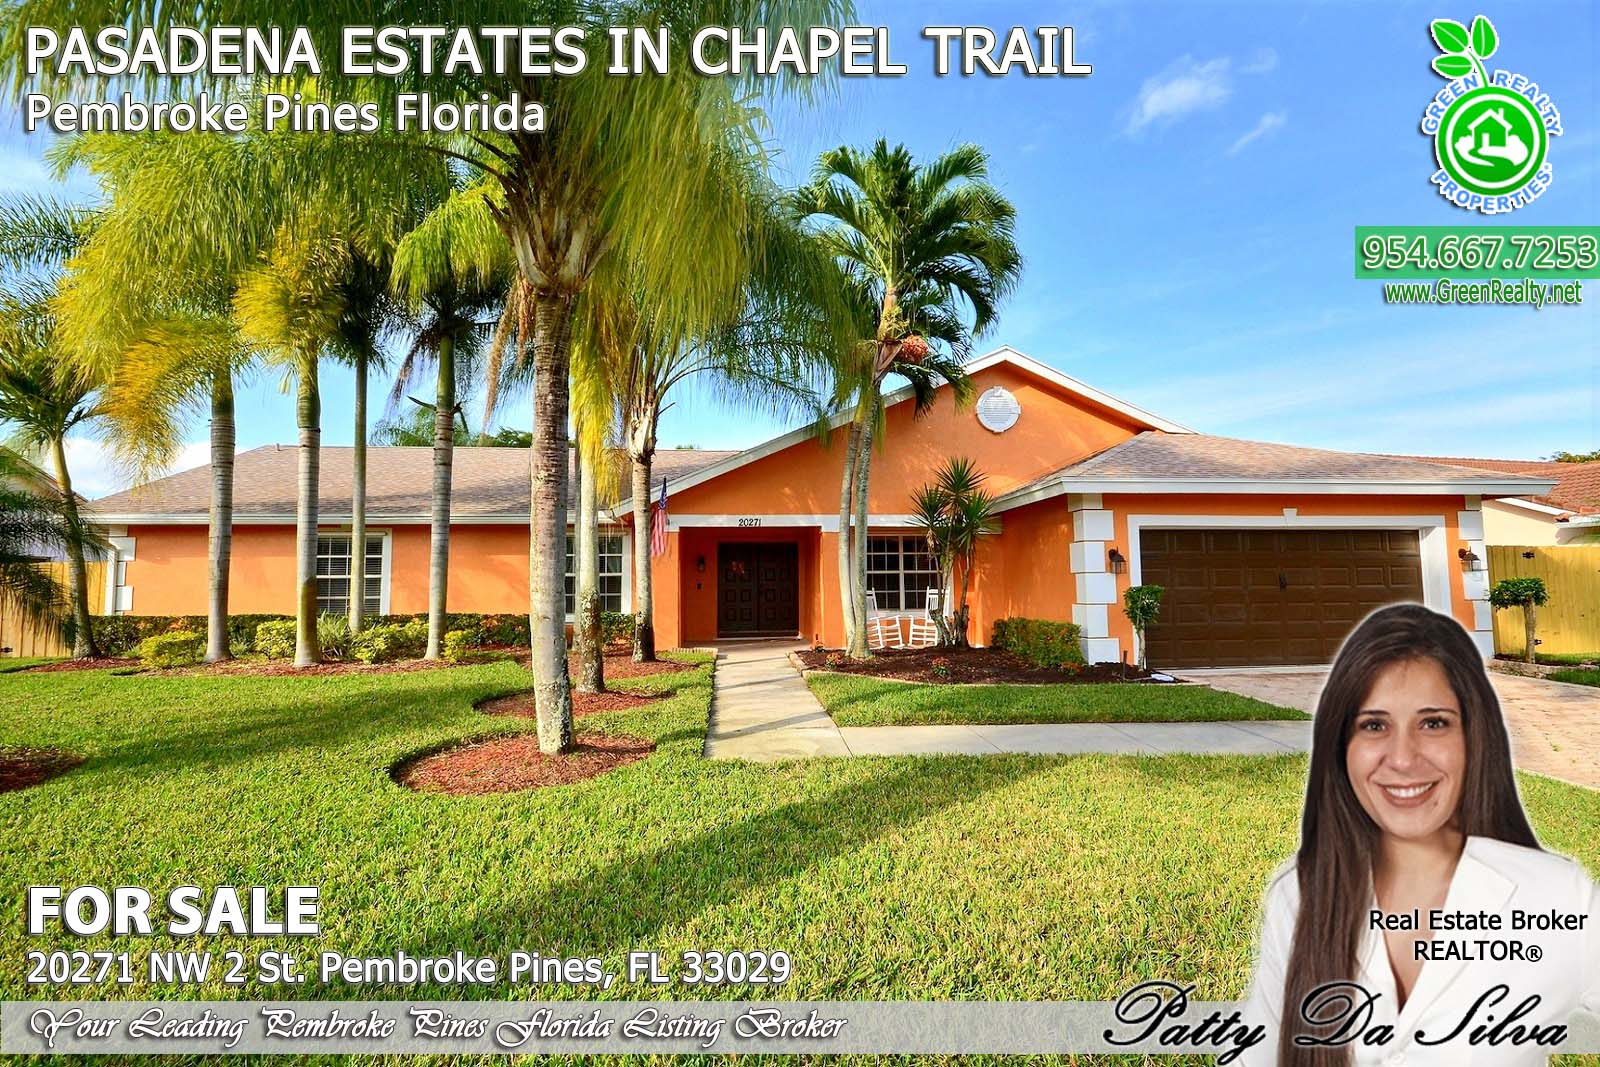 Pasadena Estates of Chapel Trail - Pembroke Pines FL Listing Agent